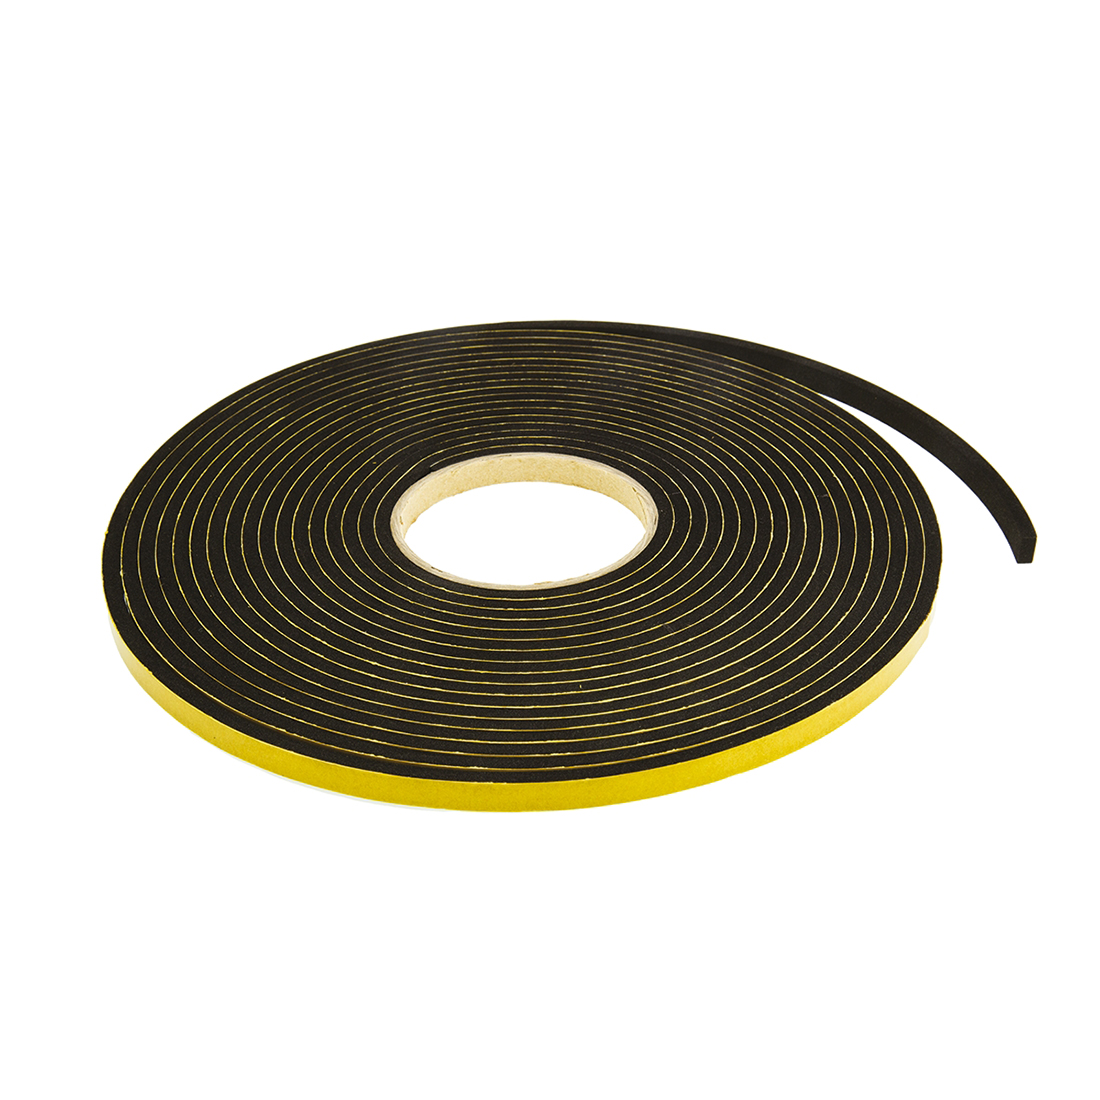 RS PRO Black Foam Tape, 10mm x 10m, 5mm Thick - 10 Pack